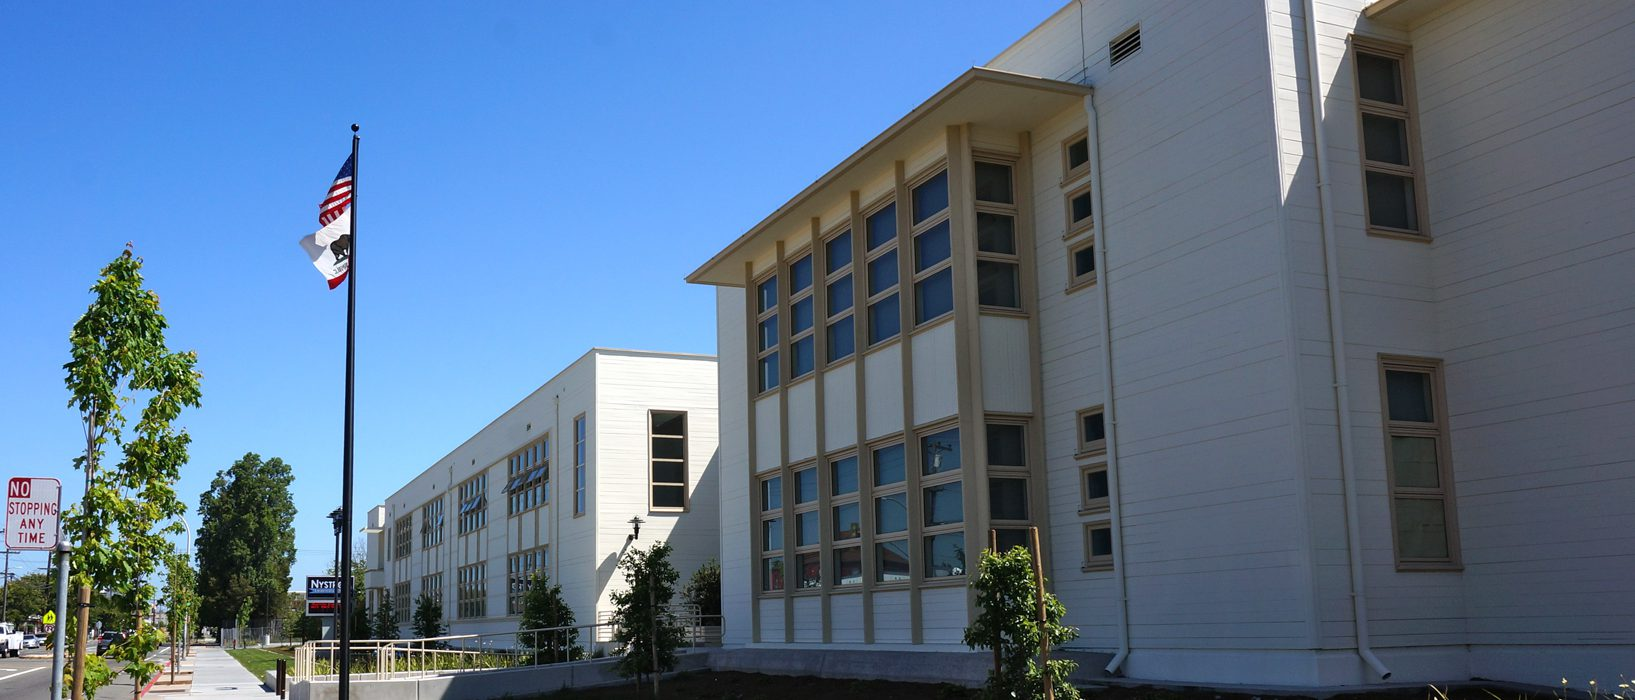 exterior image of a school